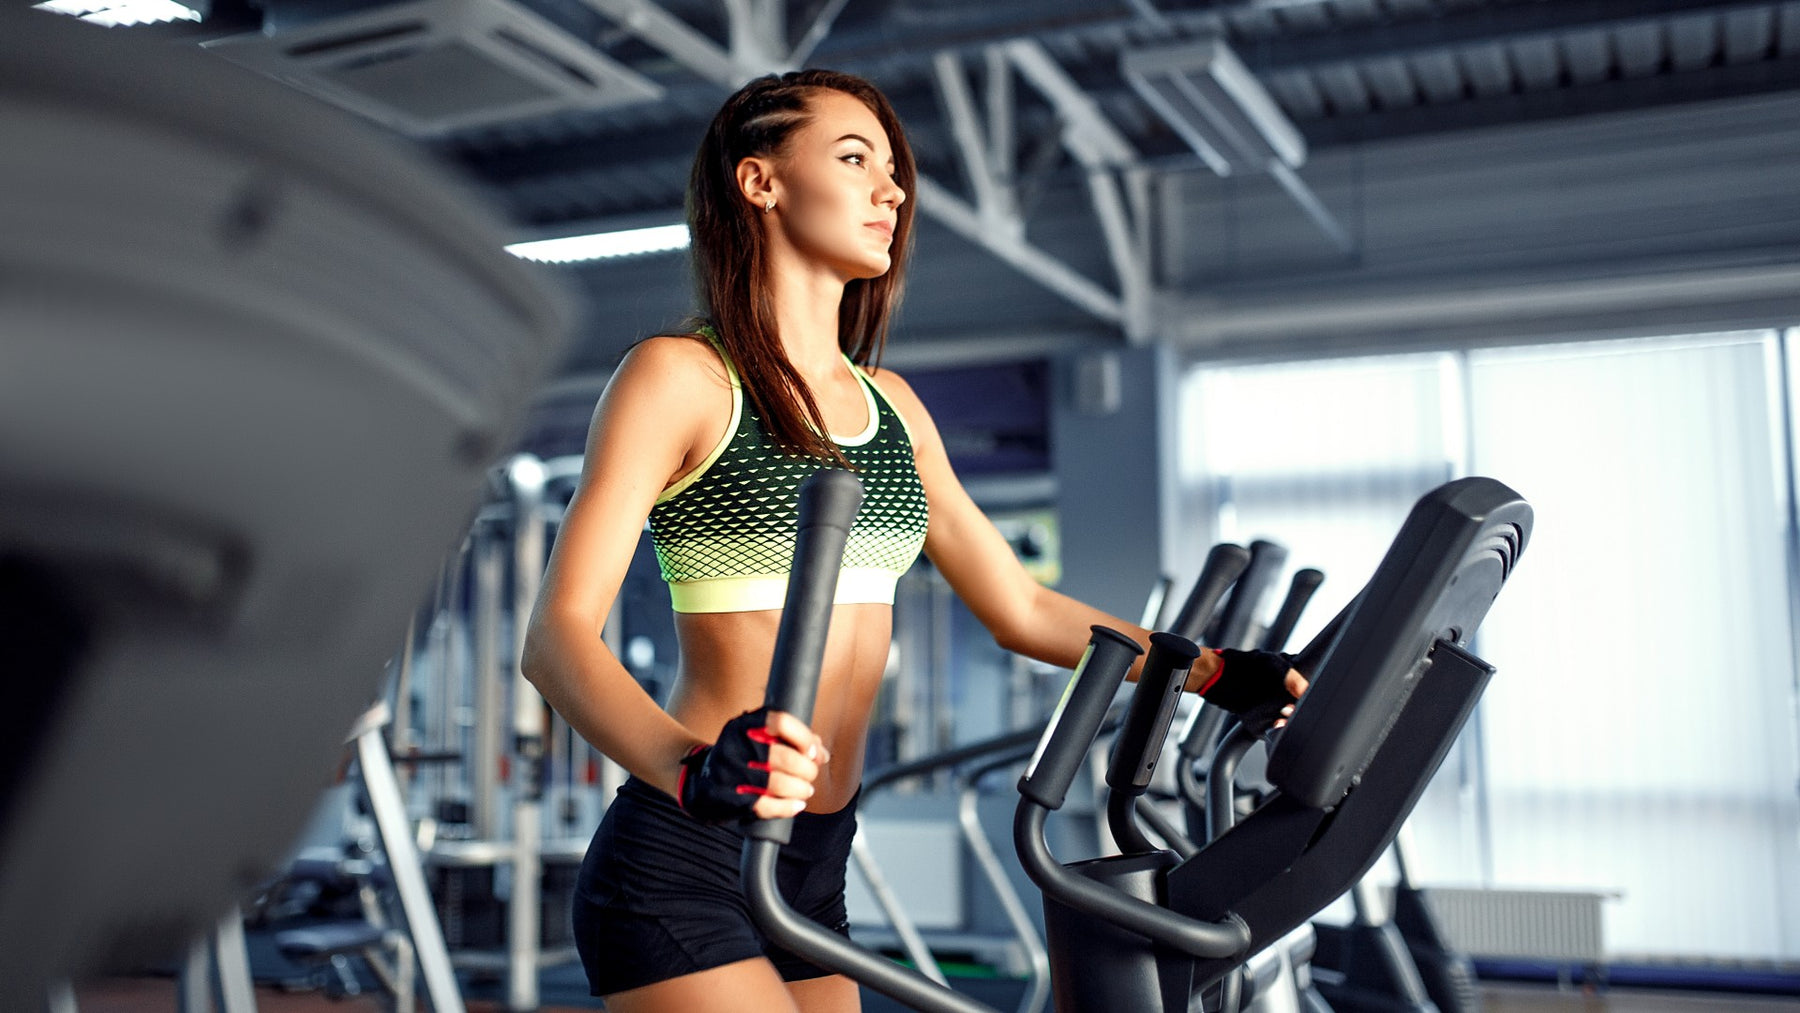 HIIT Cardio - 8 Things to Know Before Starting